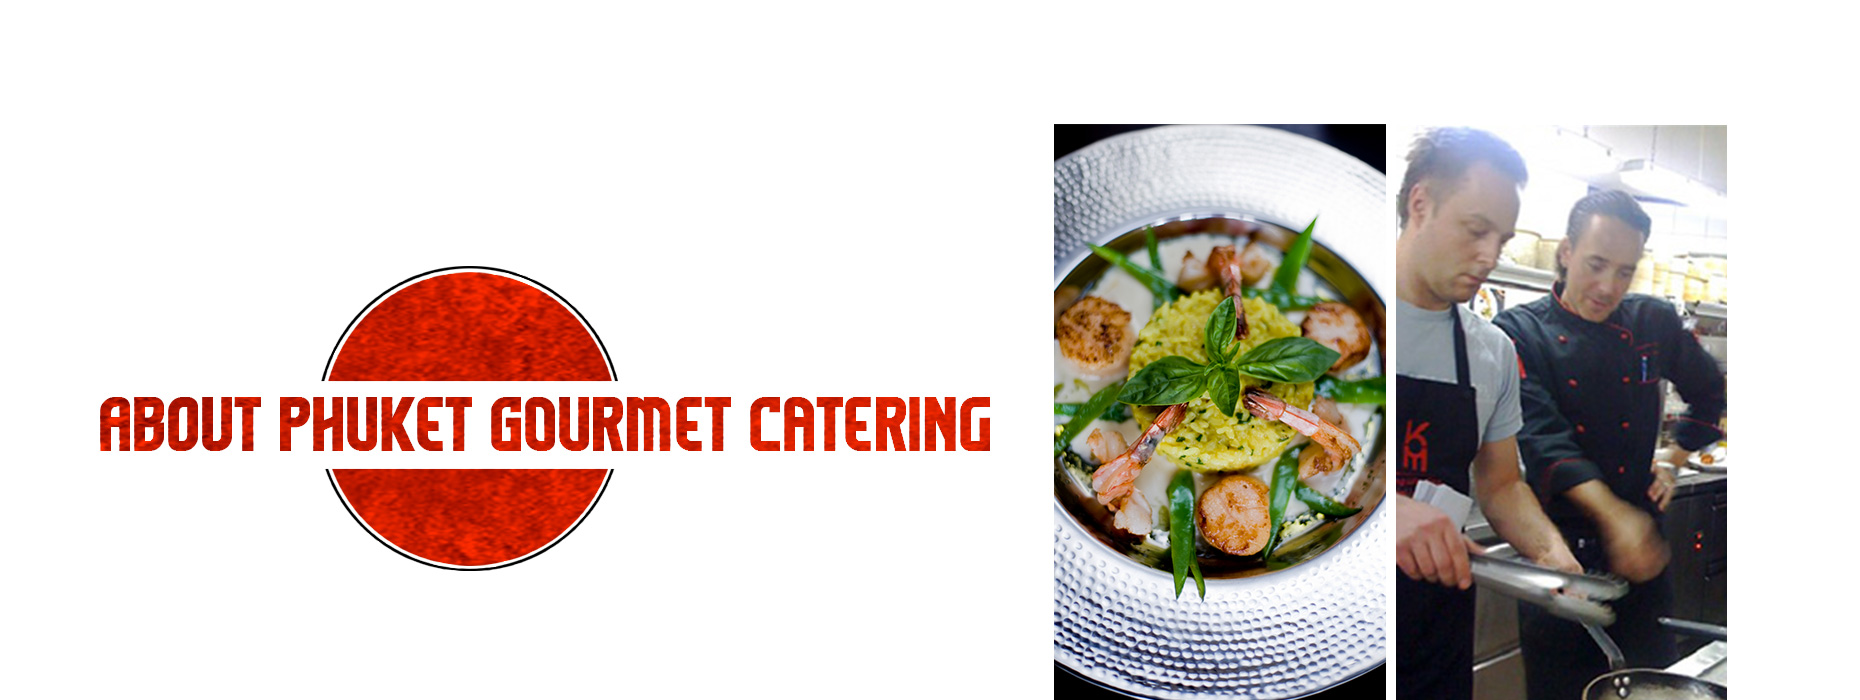 About Phuket Gourmet Catering